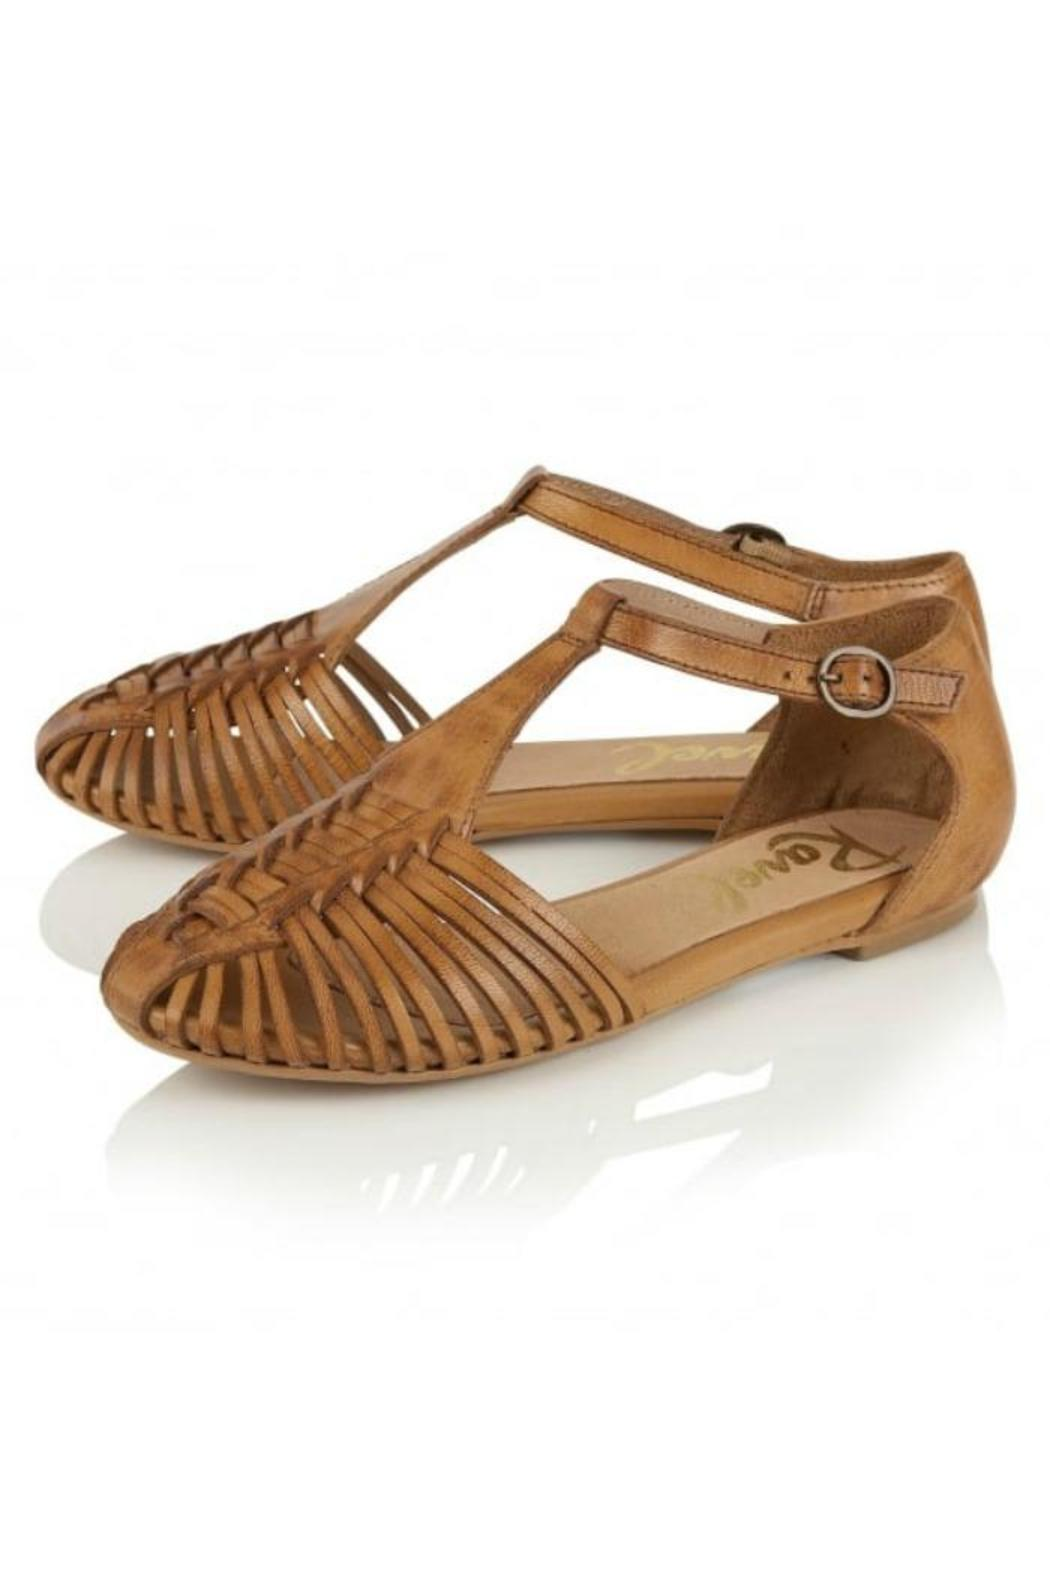 9cac03c2864 Ravel Springdale Strappy Sandals from Highlands and Islands by ...